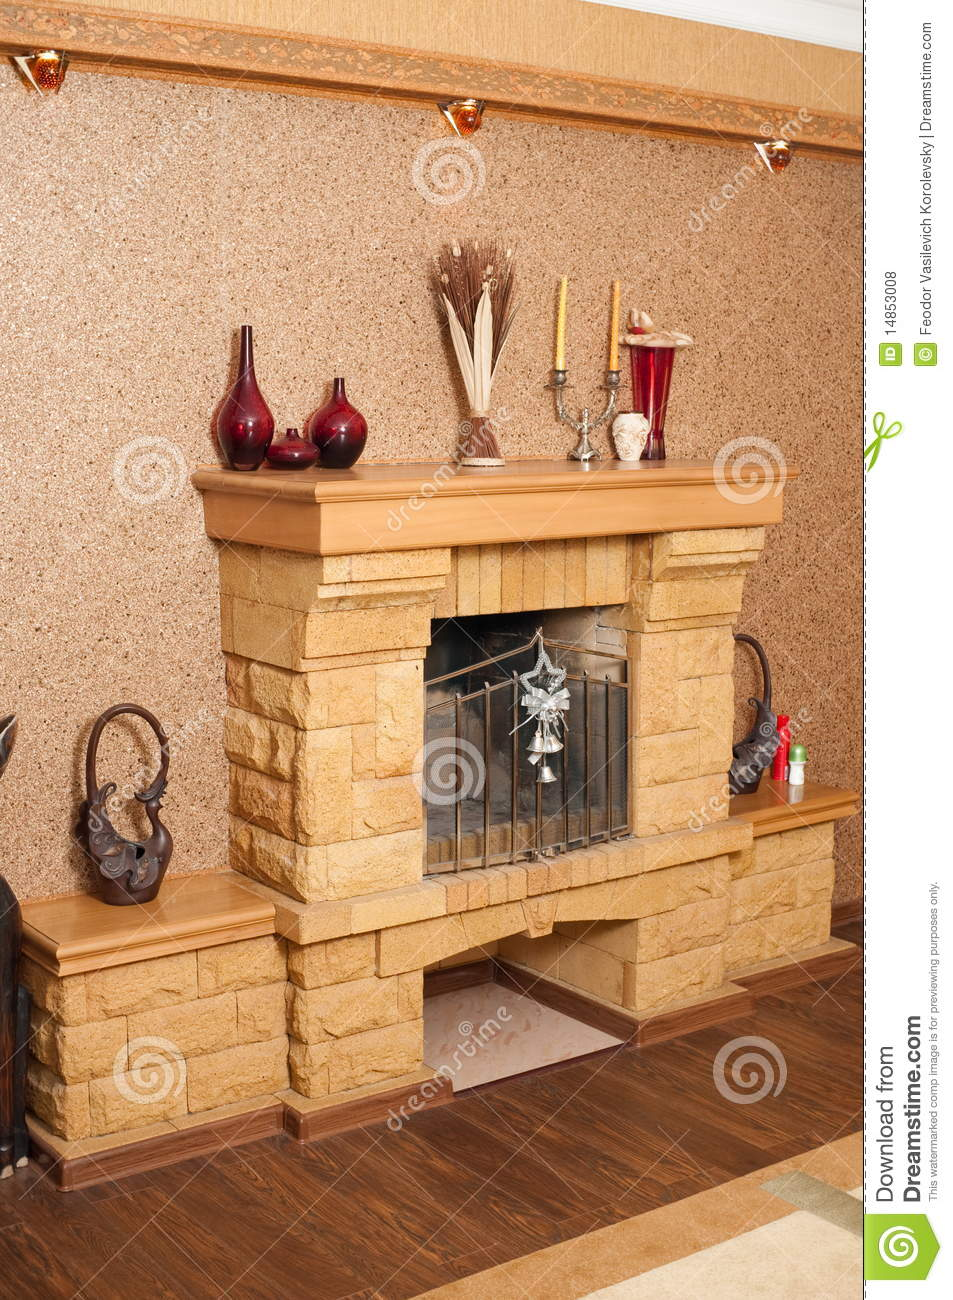 Fireplace in a drawing room.